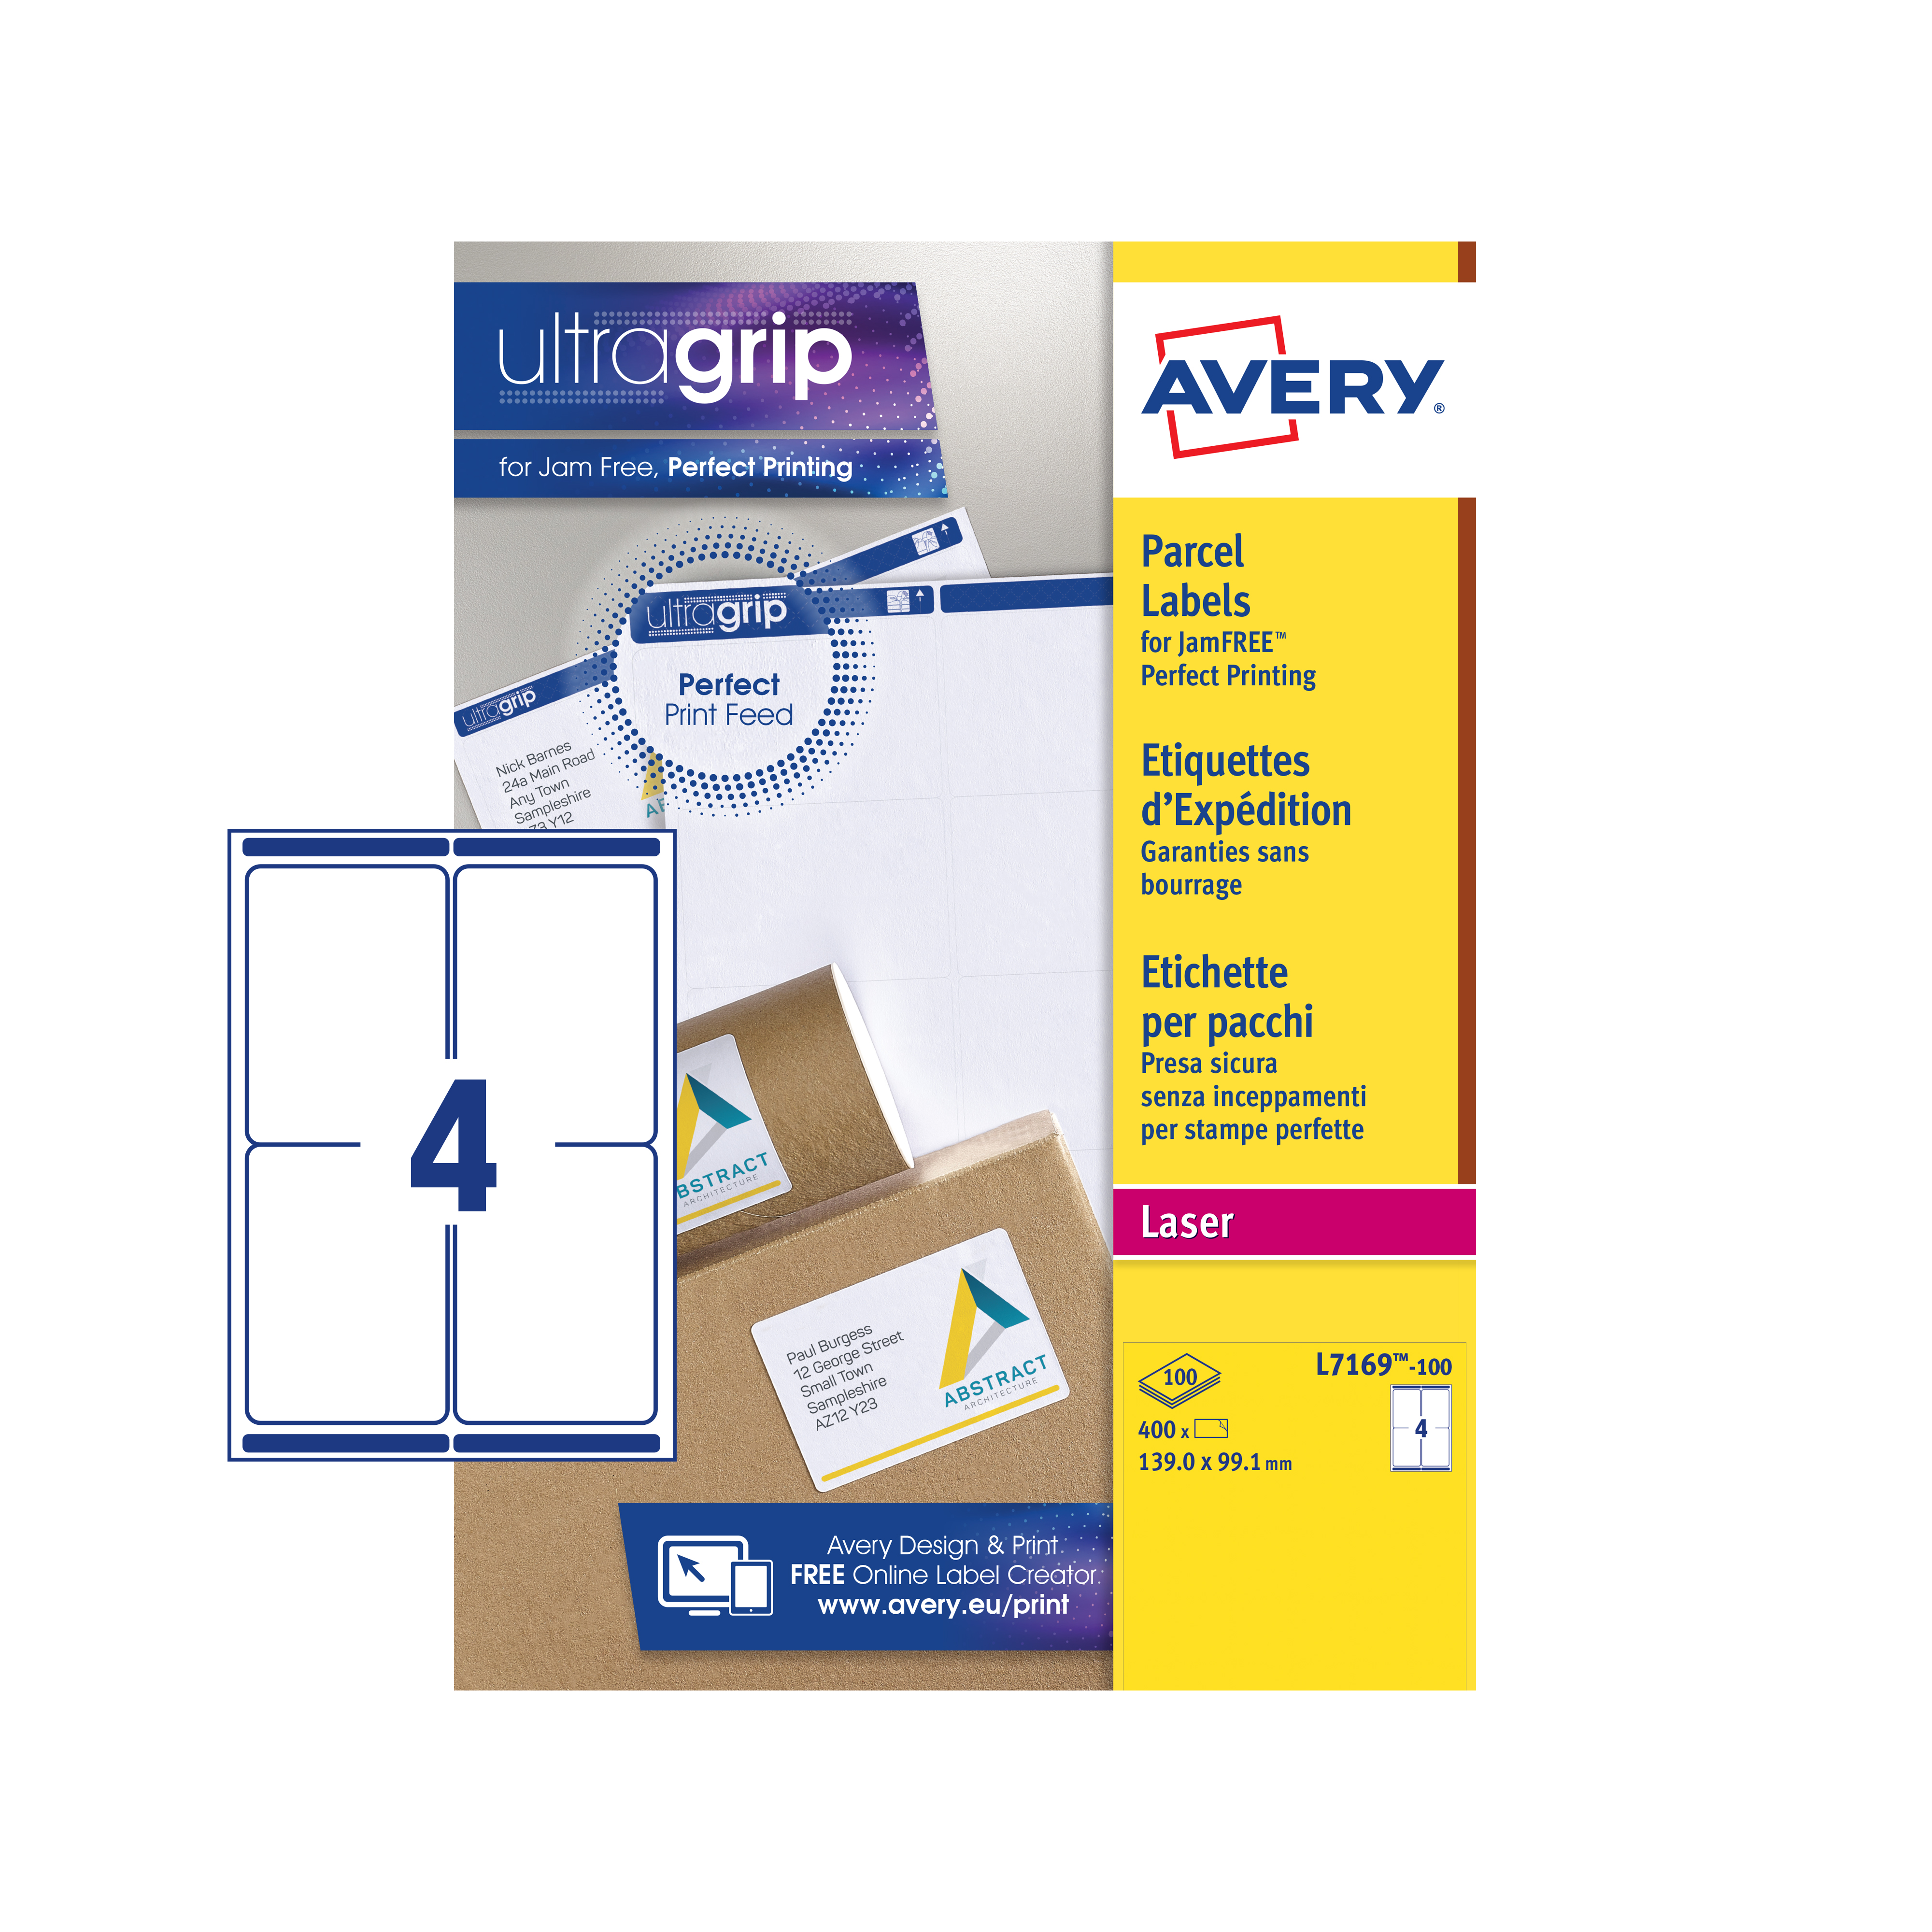 avery parcel labels laser jam free 4 per sheet 139x99 1mm opaque